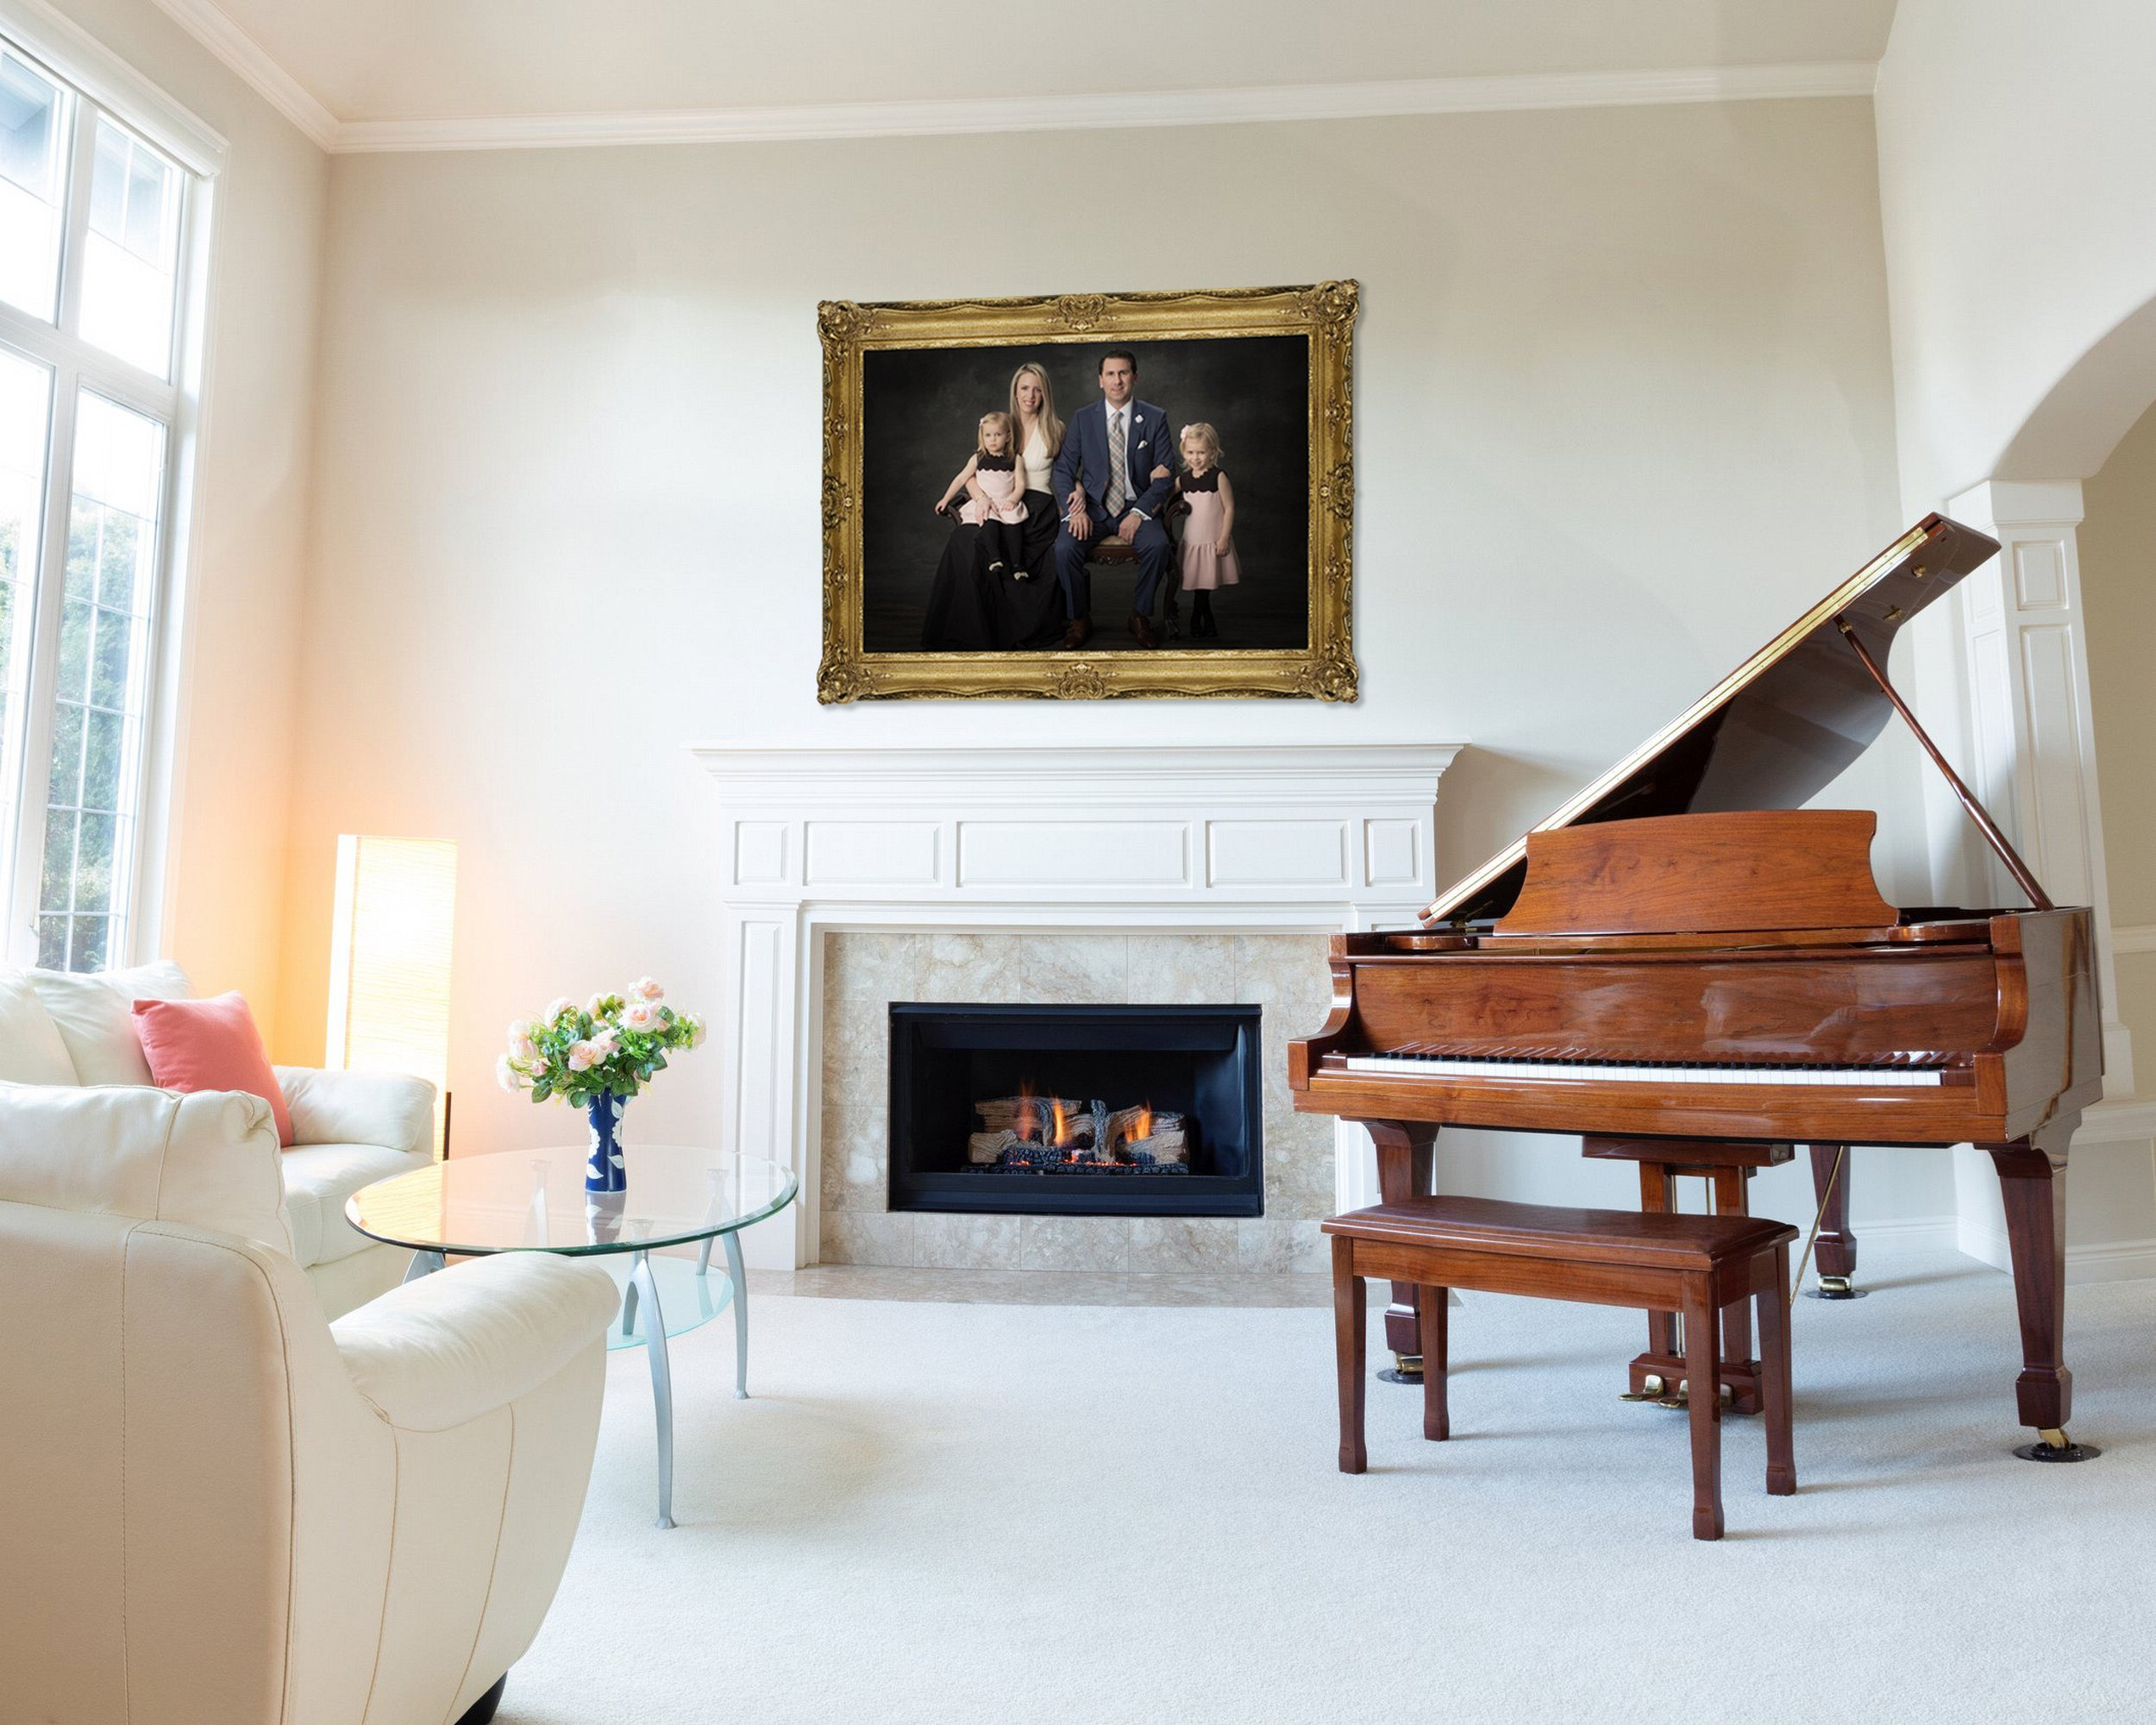 Bright day light coming into living room with burning fireplace, grand piano and white leather sofa.